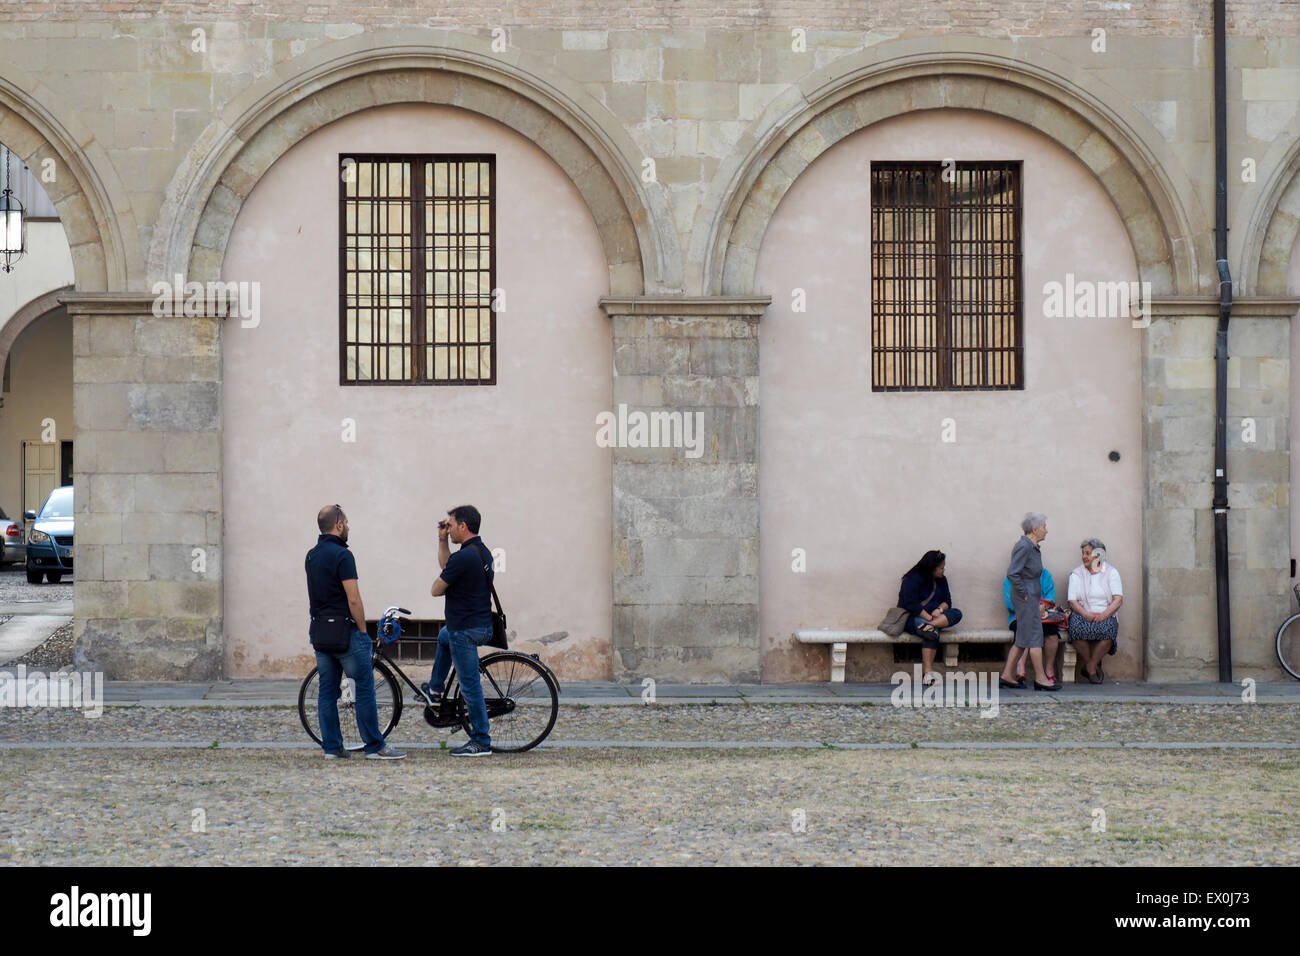 Elderly ladies sitting on a bench and two men talking. - Stock Image